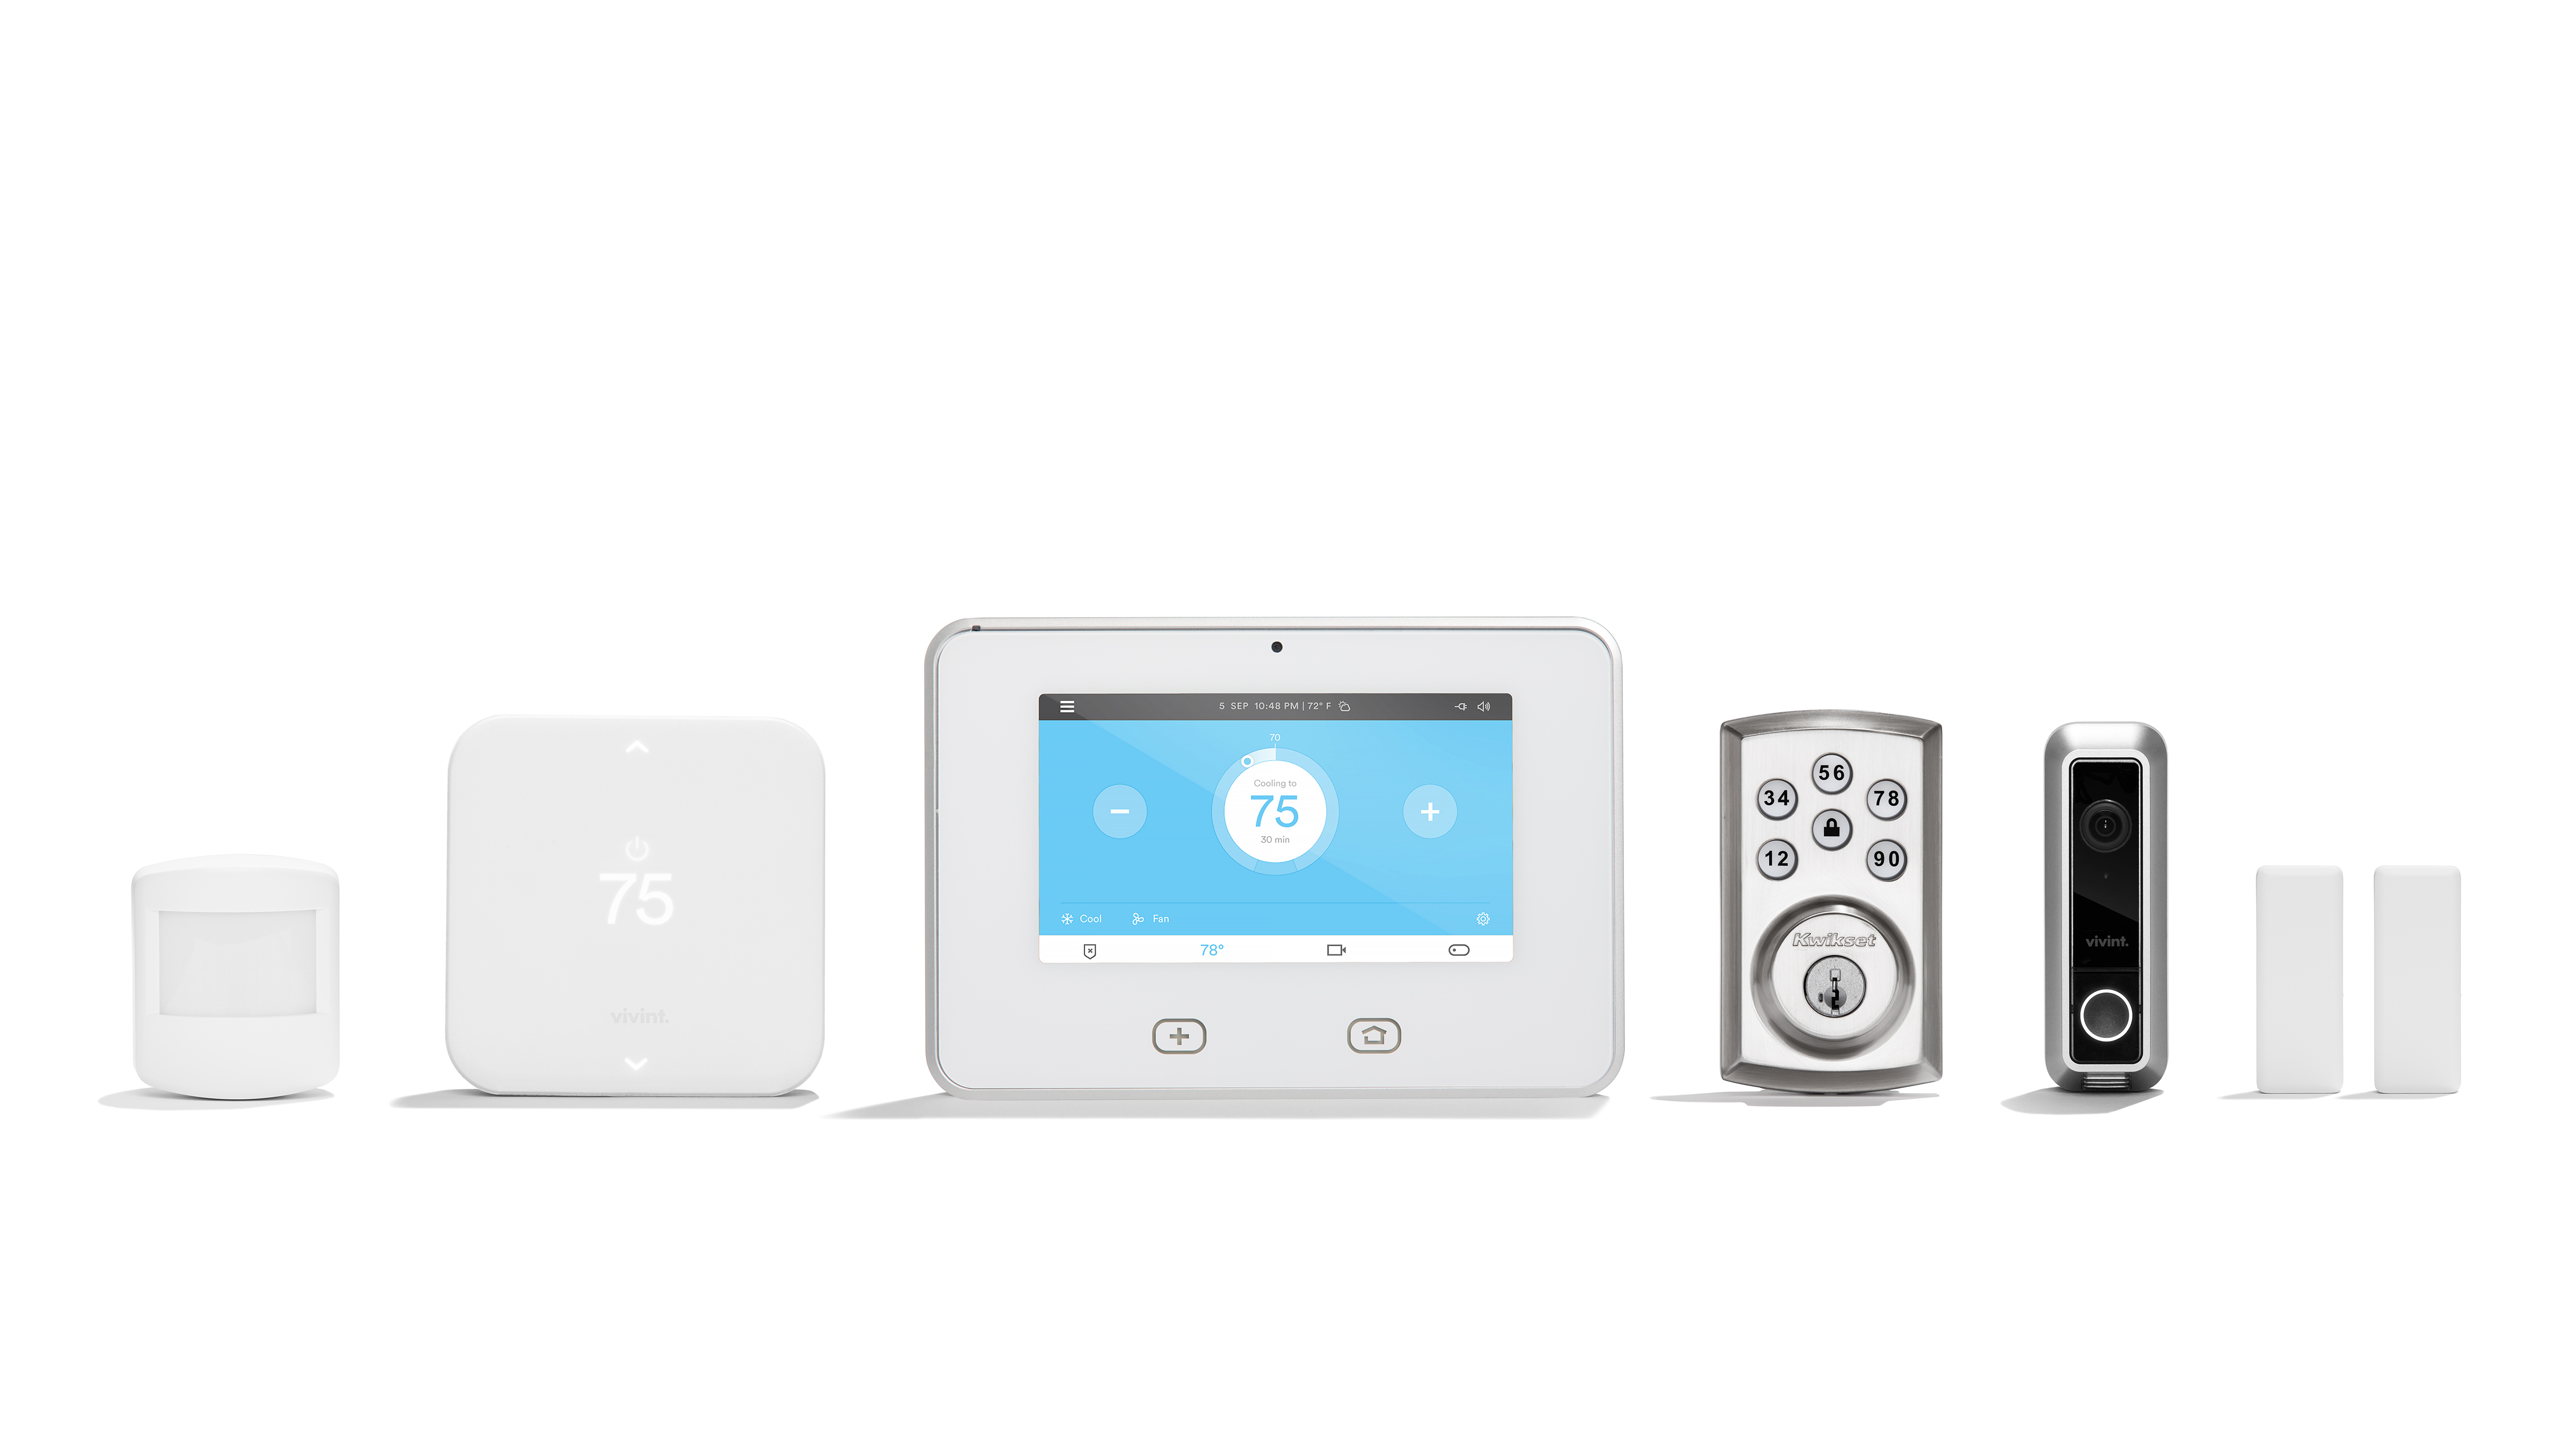 Vivint Smart Home Partners With Airbnb To Simplify Hosting